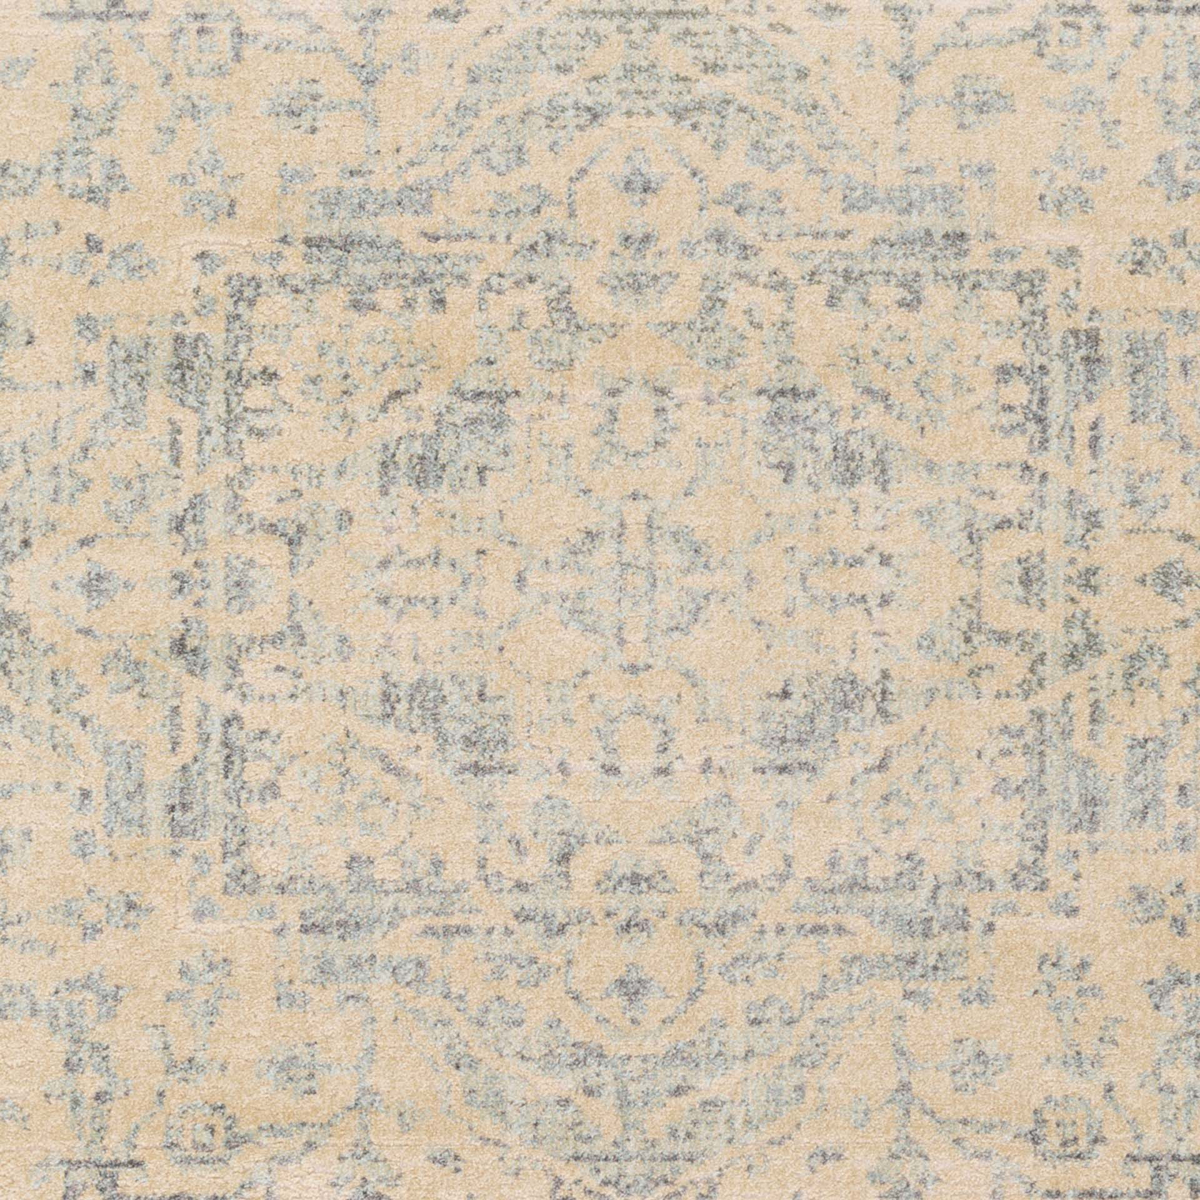 Neutral tone machine made Egyptian area rug in beige with hints of gray and green - Close Up